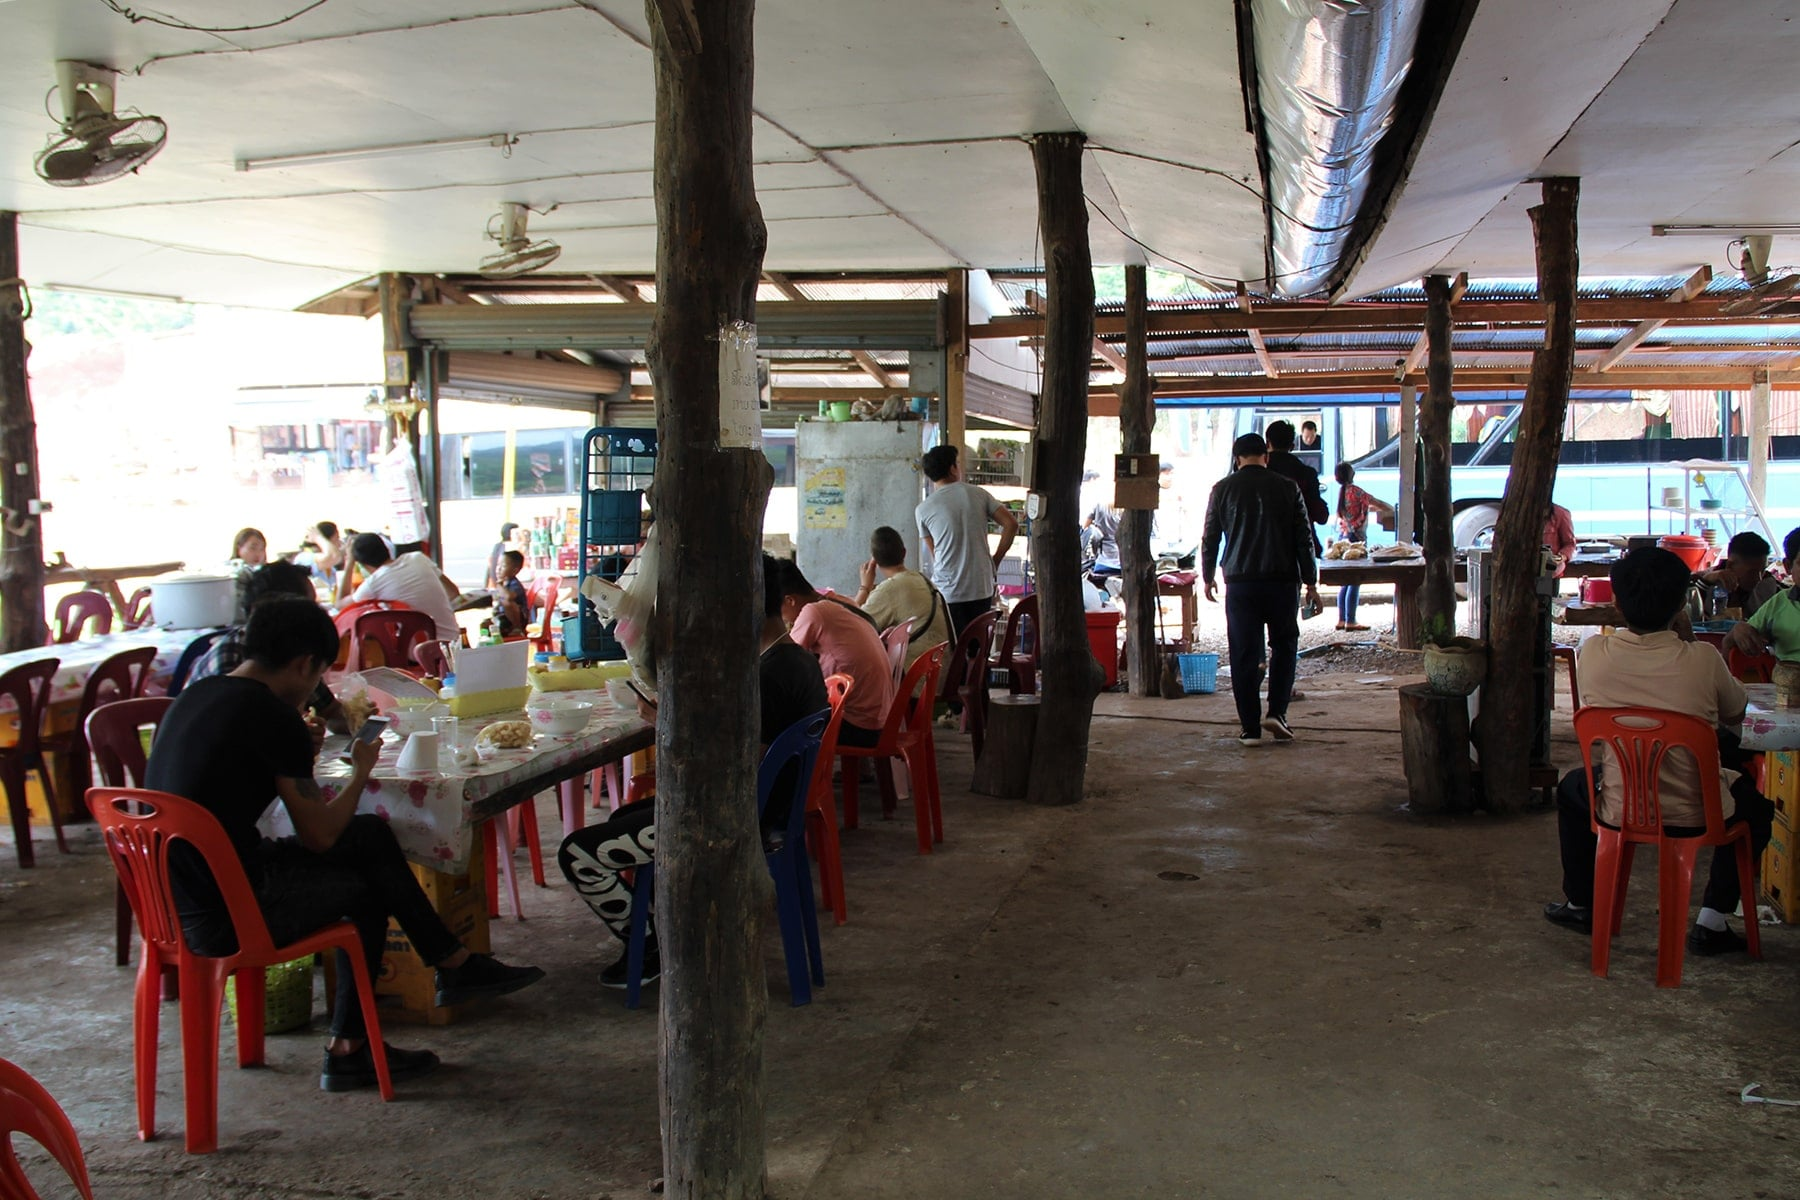 Food stop on the road in Laos